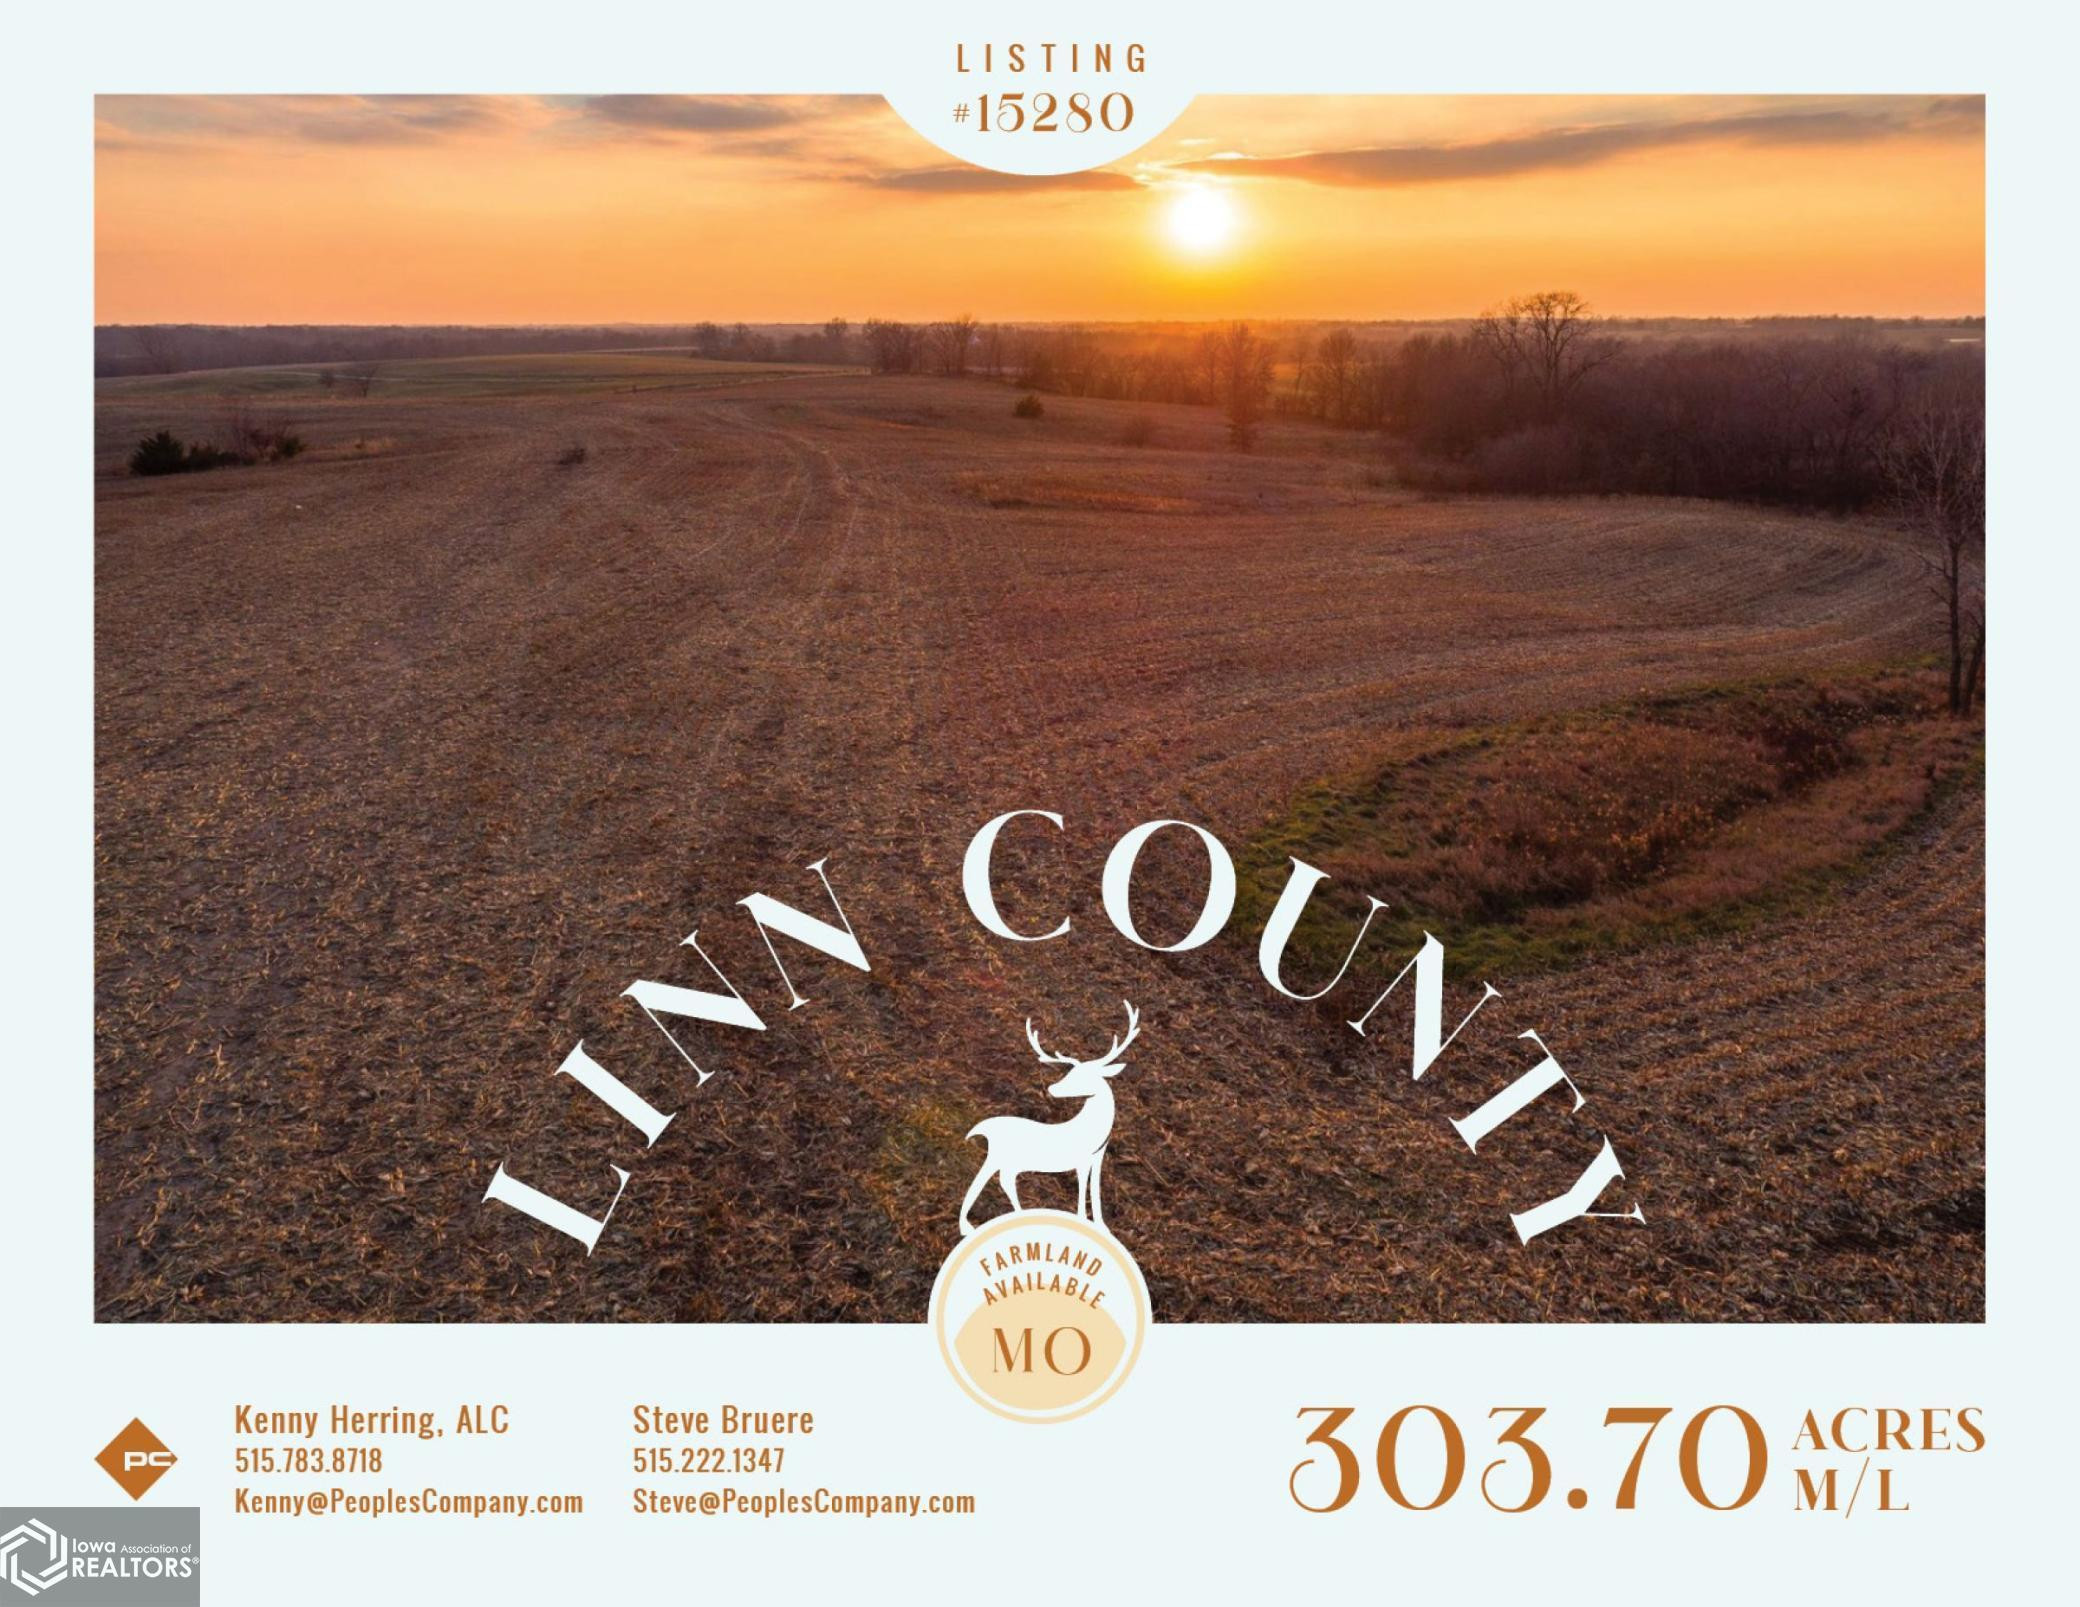 land-linn-county-missouri-304-acres-listing-number-15280--2020-12-18-162215